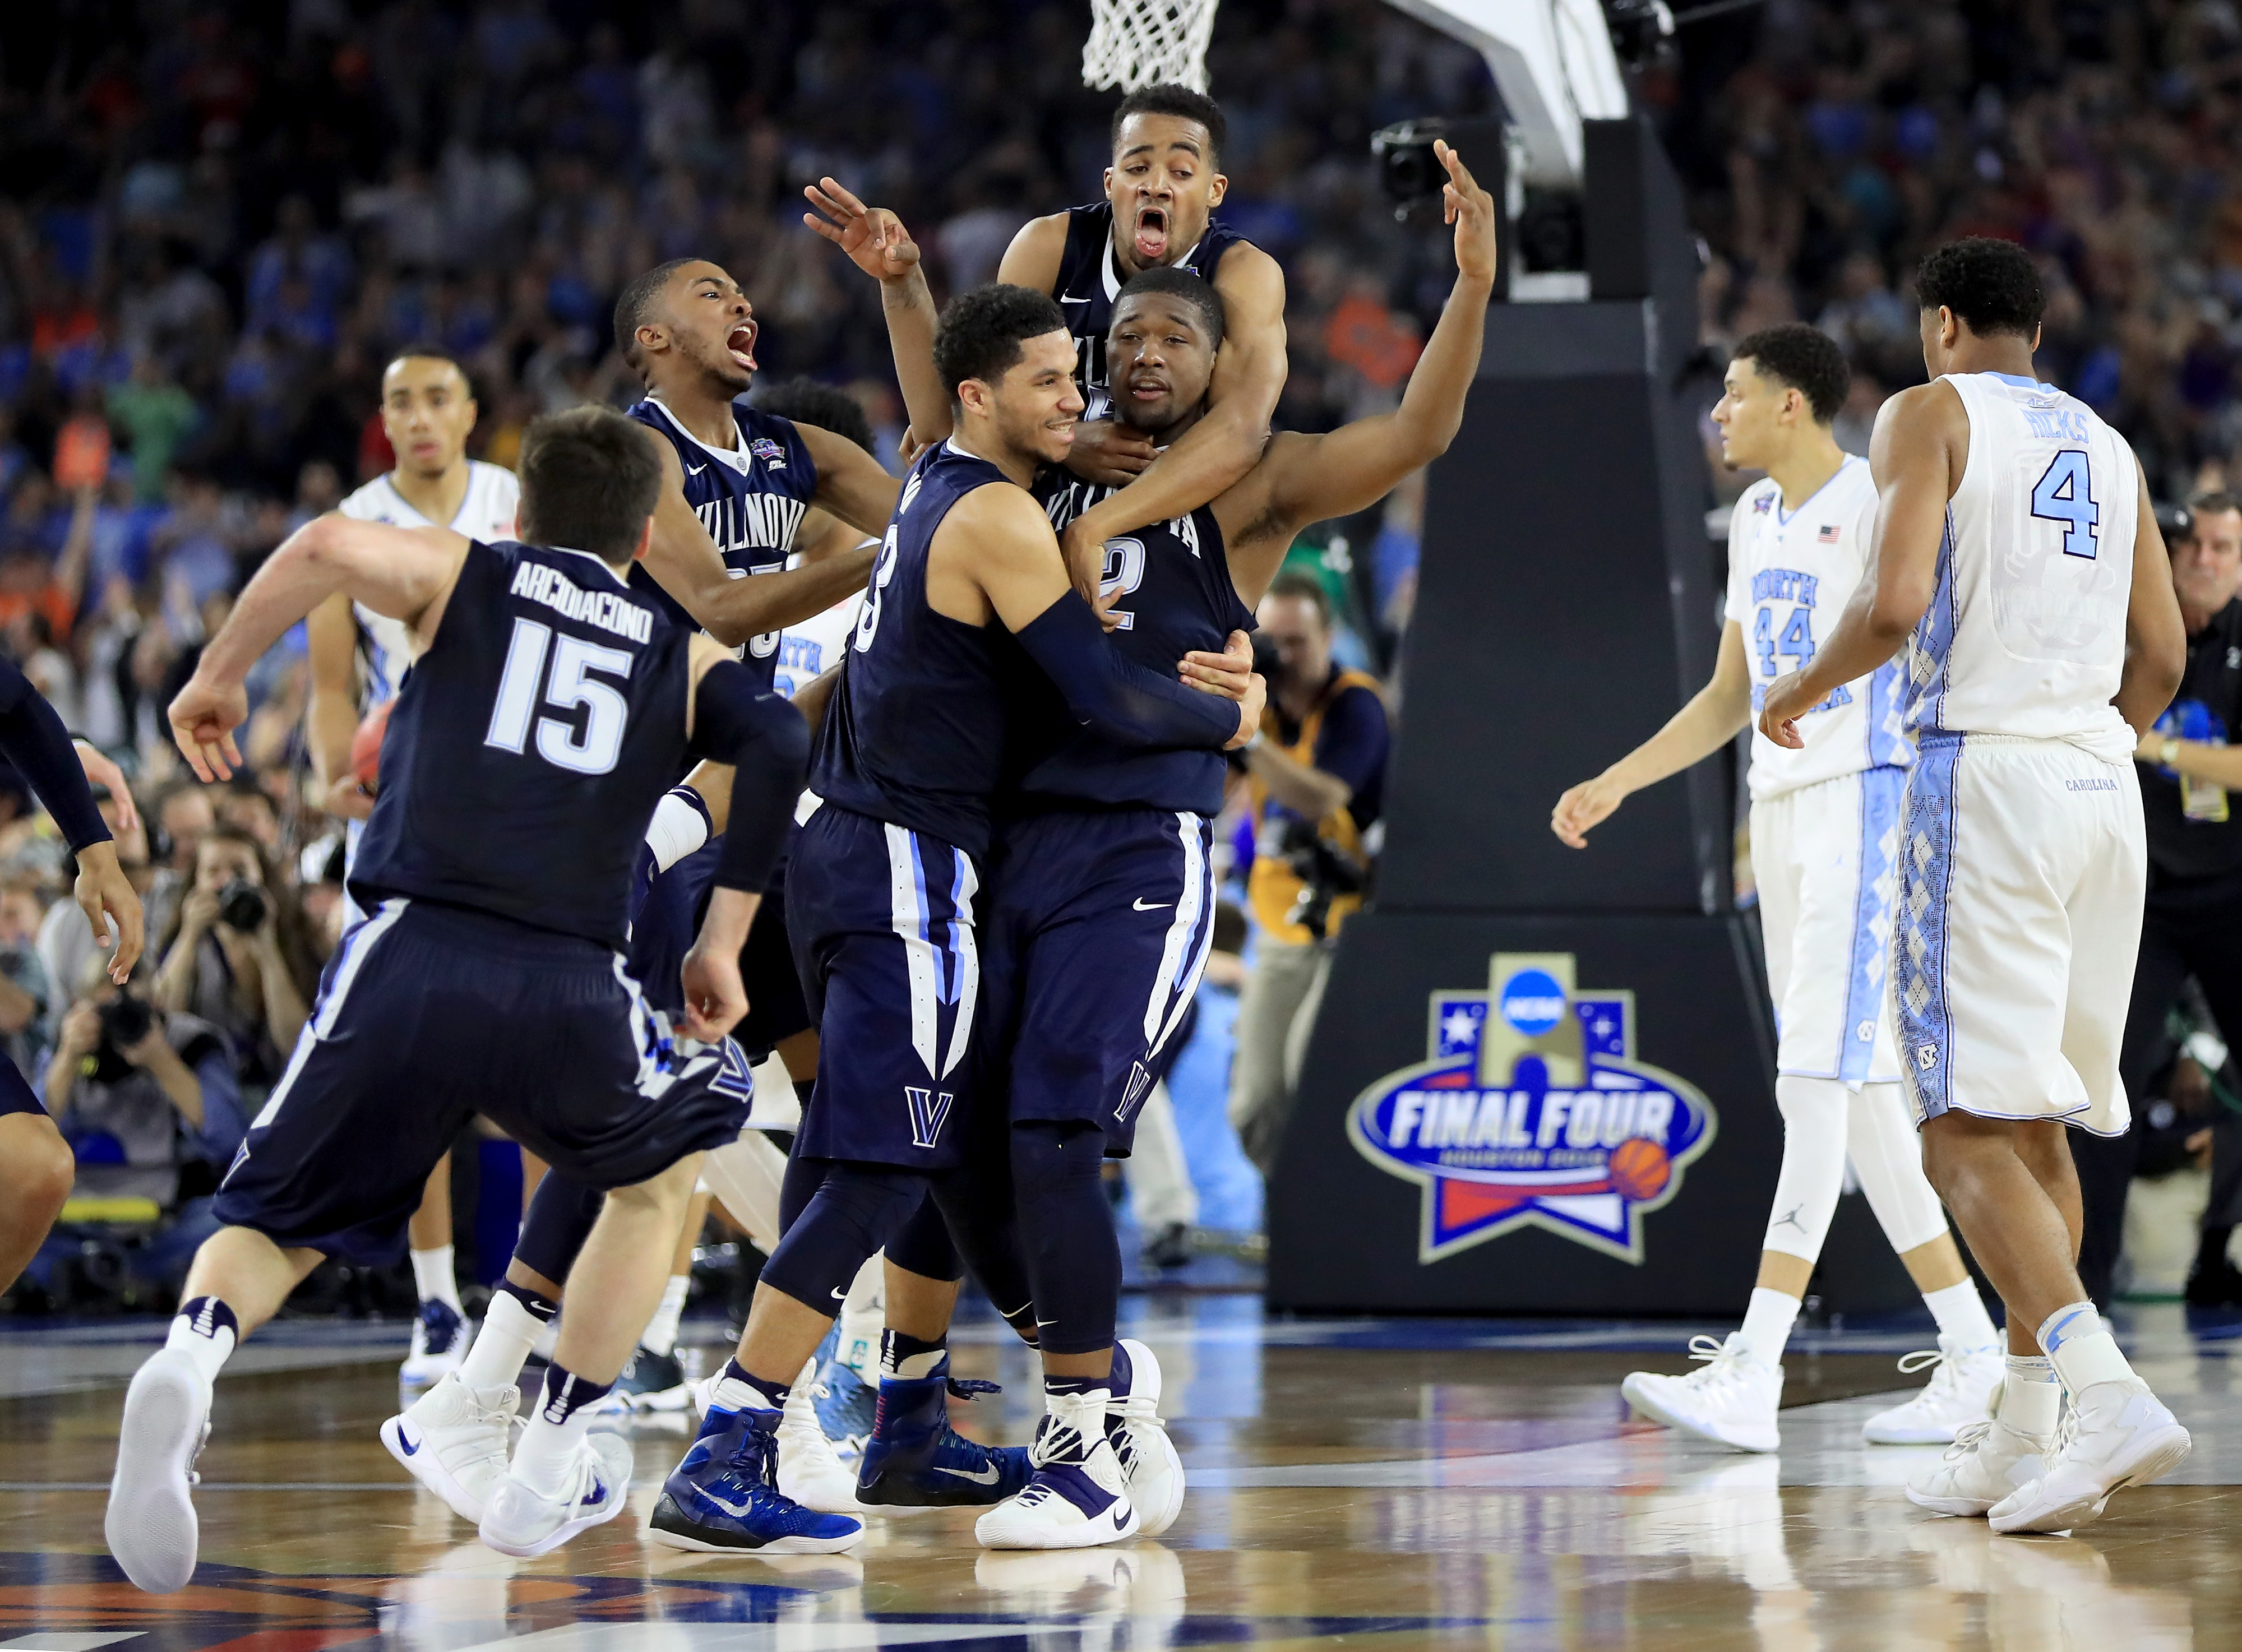 Villanova players mob teammate Kris Jenkins (#2) after he sinks a buzzer-beater to beat North Carolina in the national championship game at NRG Stadium in Houston, Texas on April 4, 2016